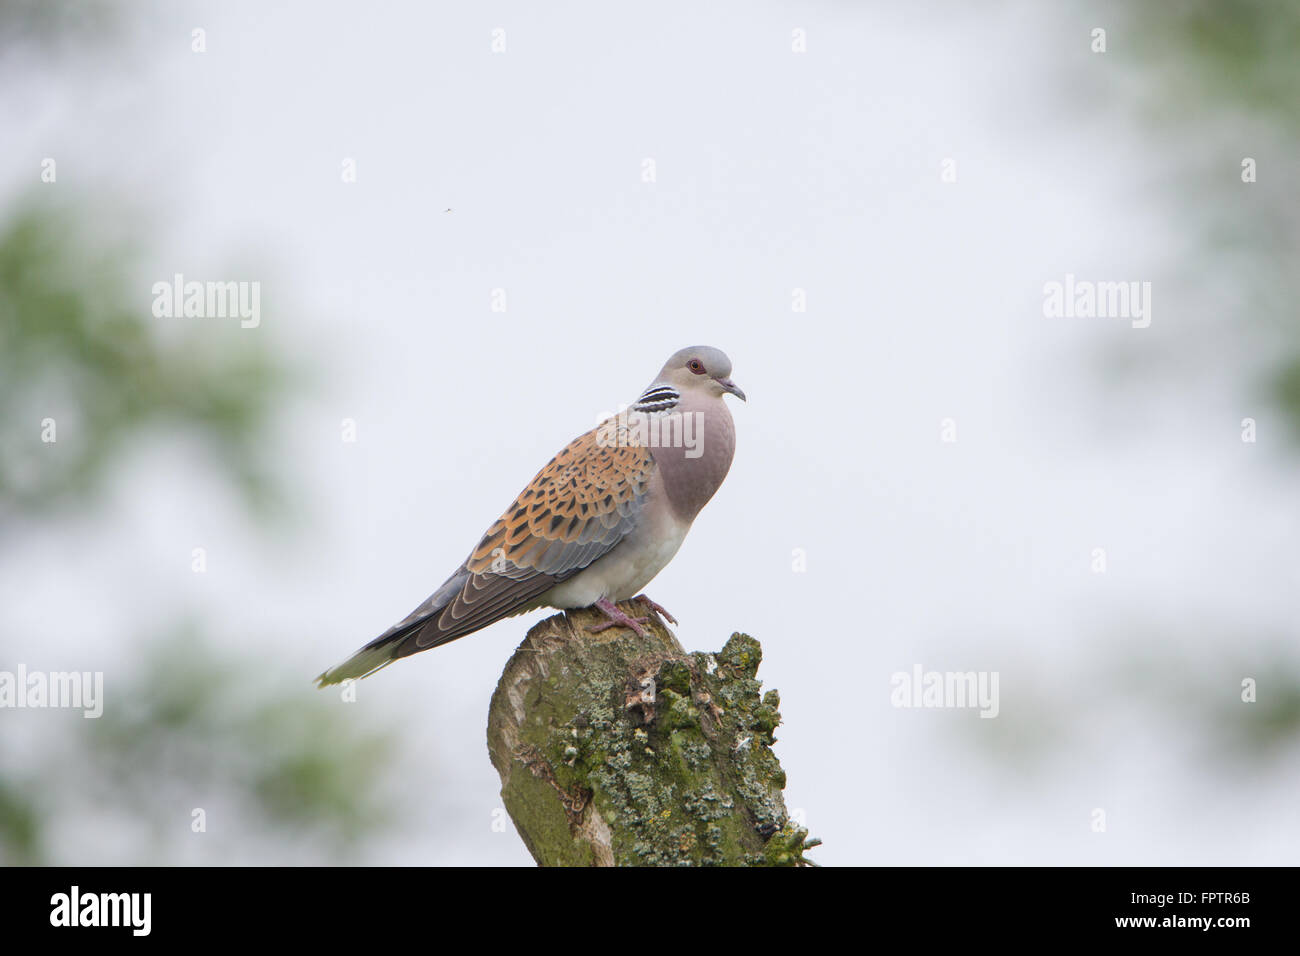 Turtle dove (Streptopelia turtur) at RSPB Otmoor in Oxfordshire, England, UK. - Stock Image